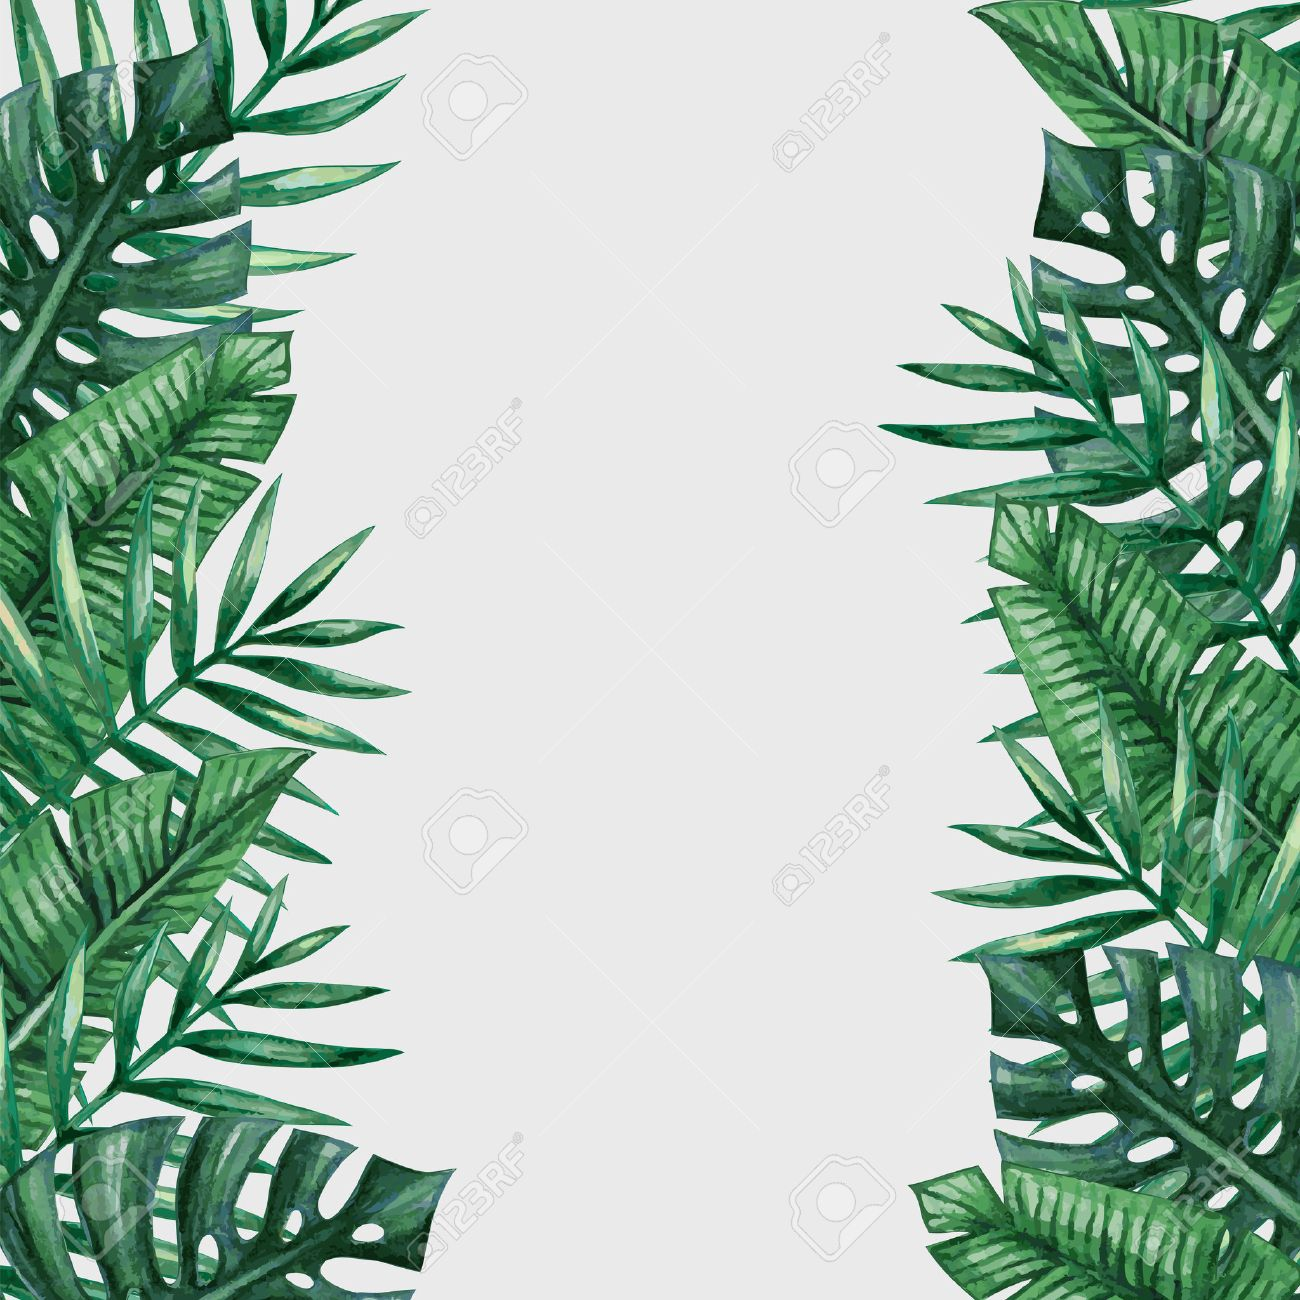 Palm Tree Leaves Background Template Tropical Greeting Card Royalty Free Cliparts Vectors And Stock Illustration Image 55951766